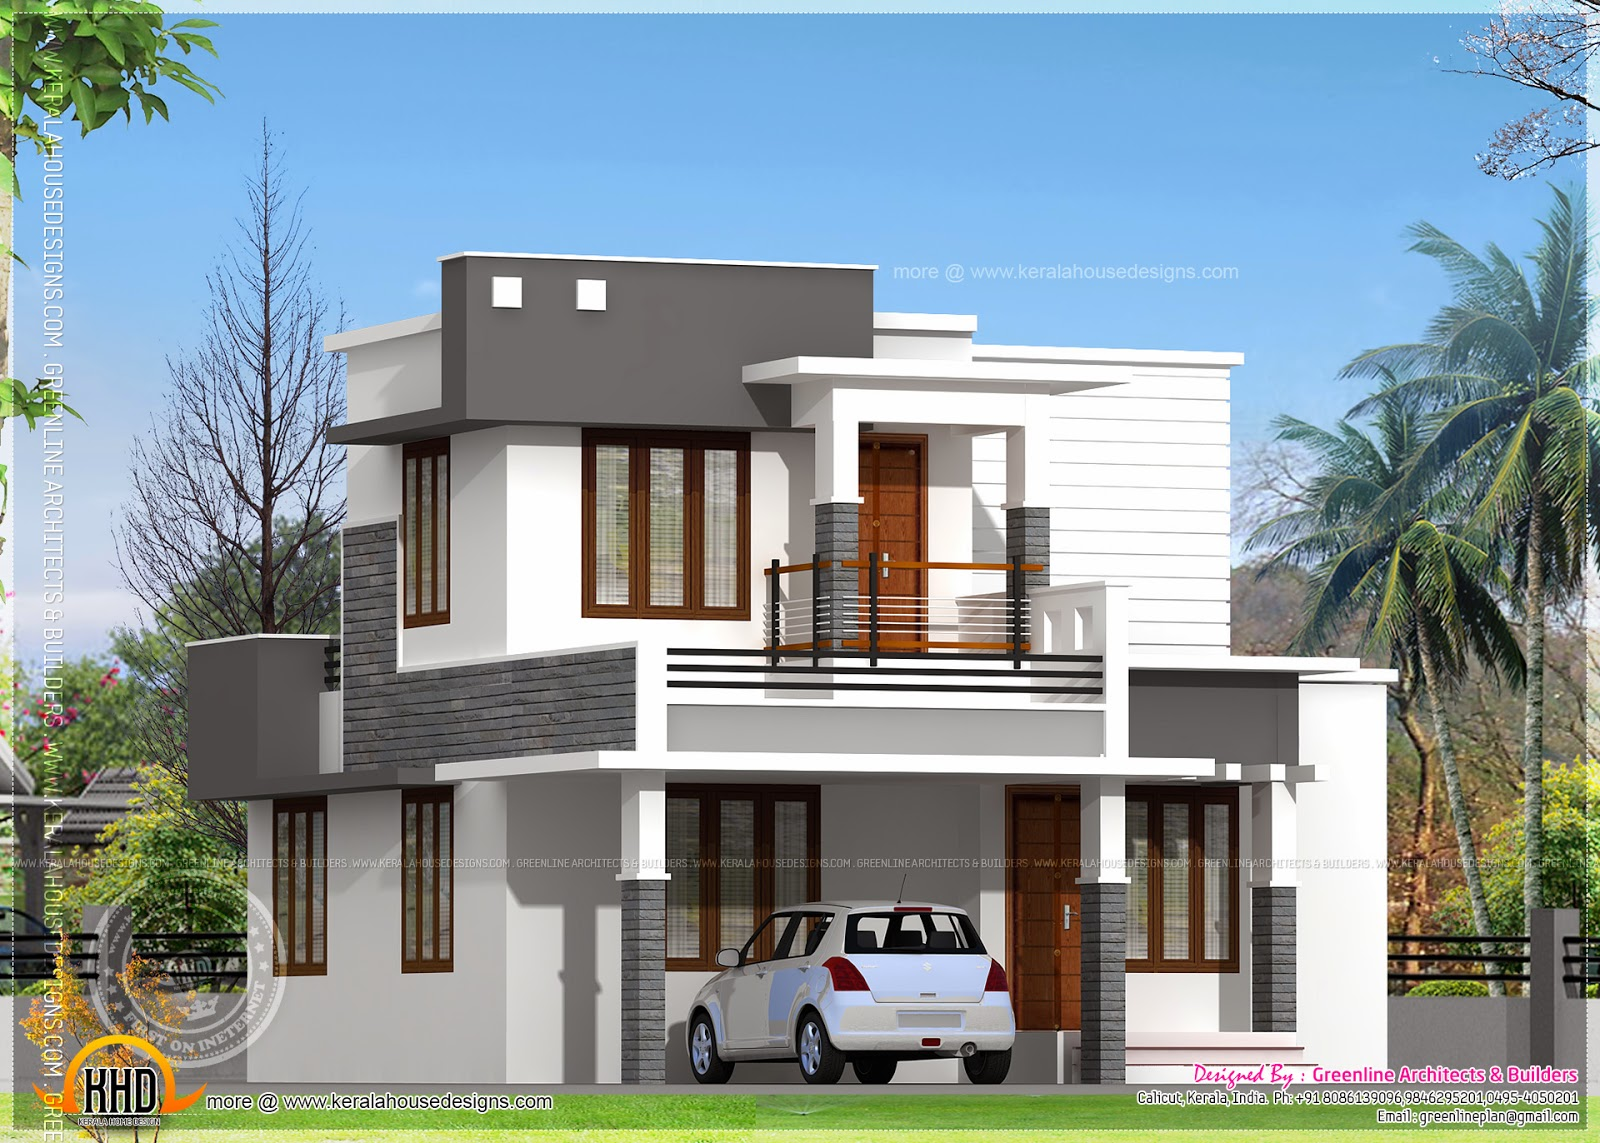 Small flat roof double stories house kerala home design for Flat roof home plans